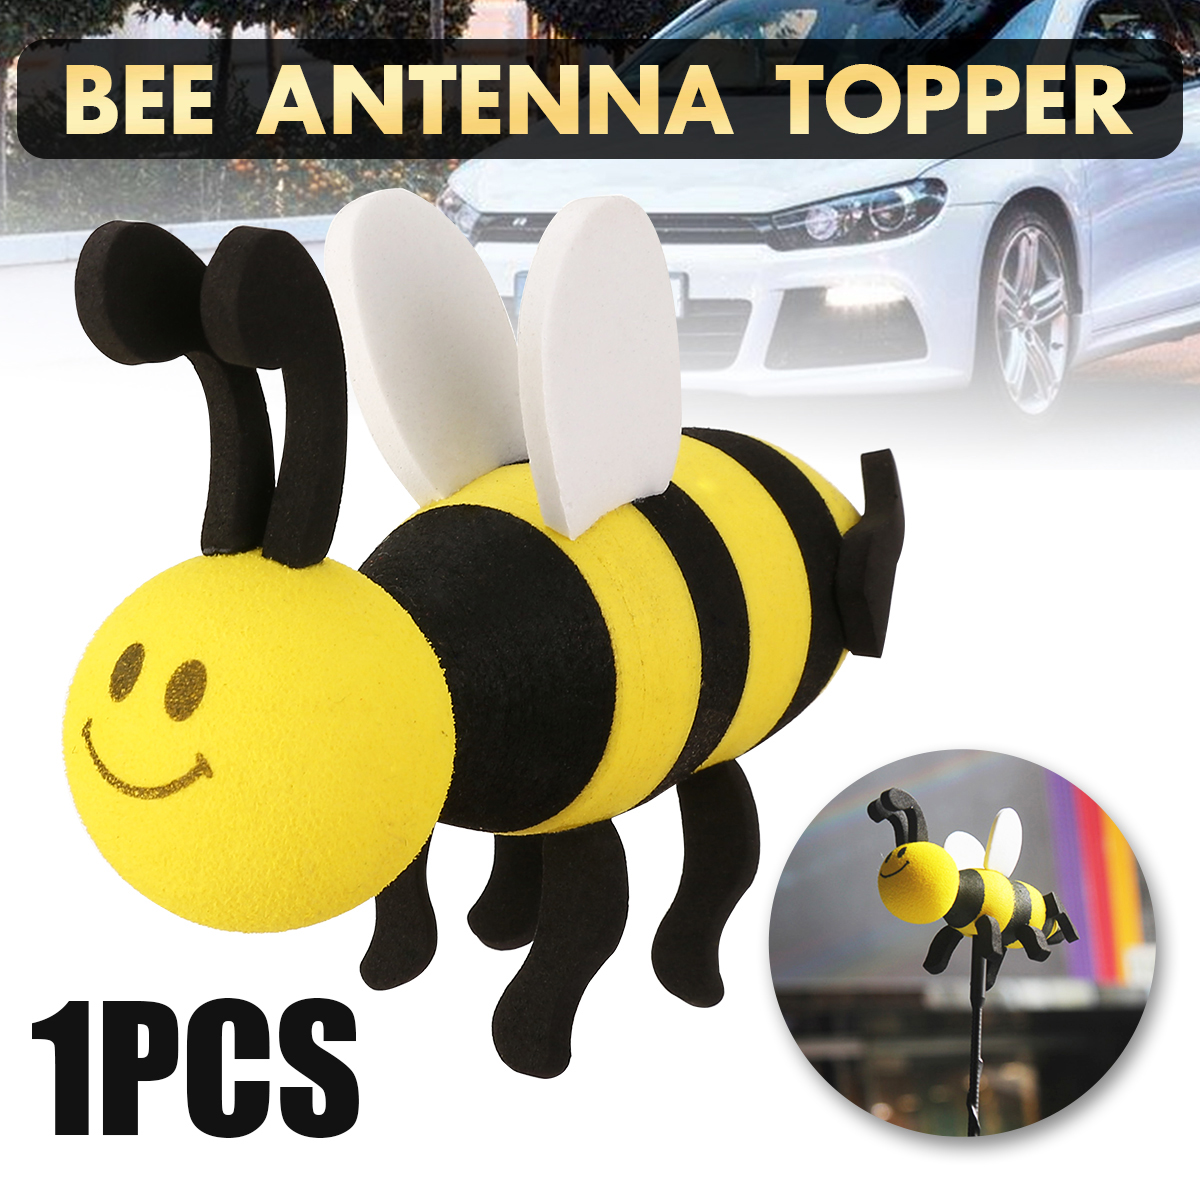 1pcs High Qualitycute Smiley Yellow Honey Bumble Bee Car Antenna Pen Topper Aerial Ball Decoration Toy Car Accessories